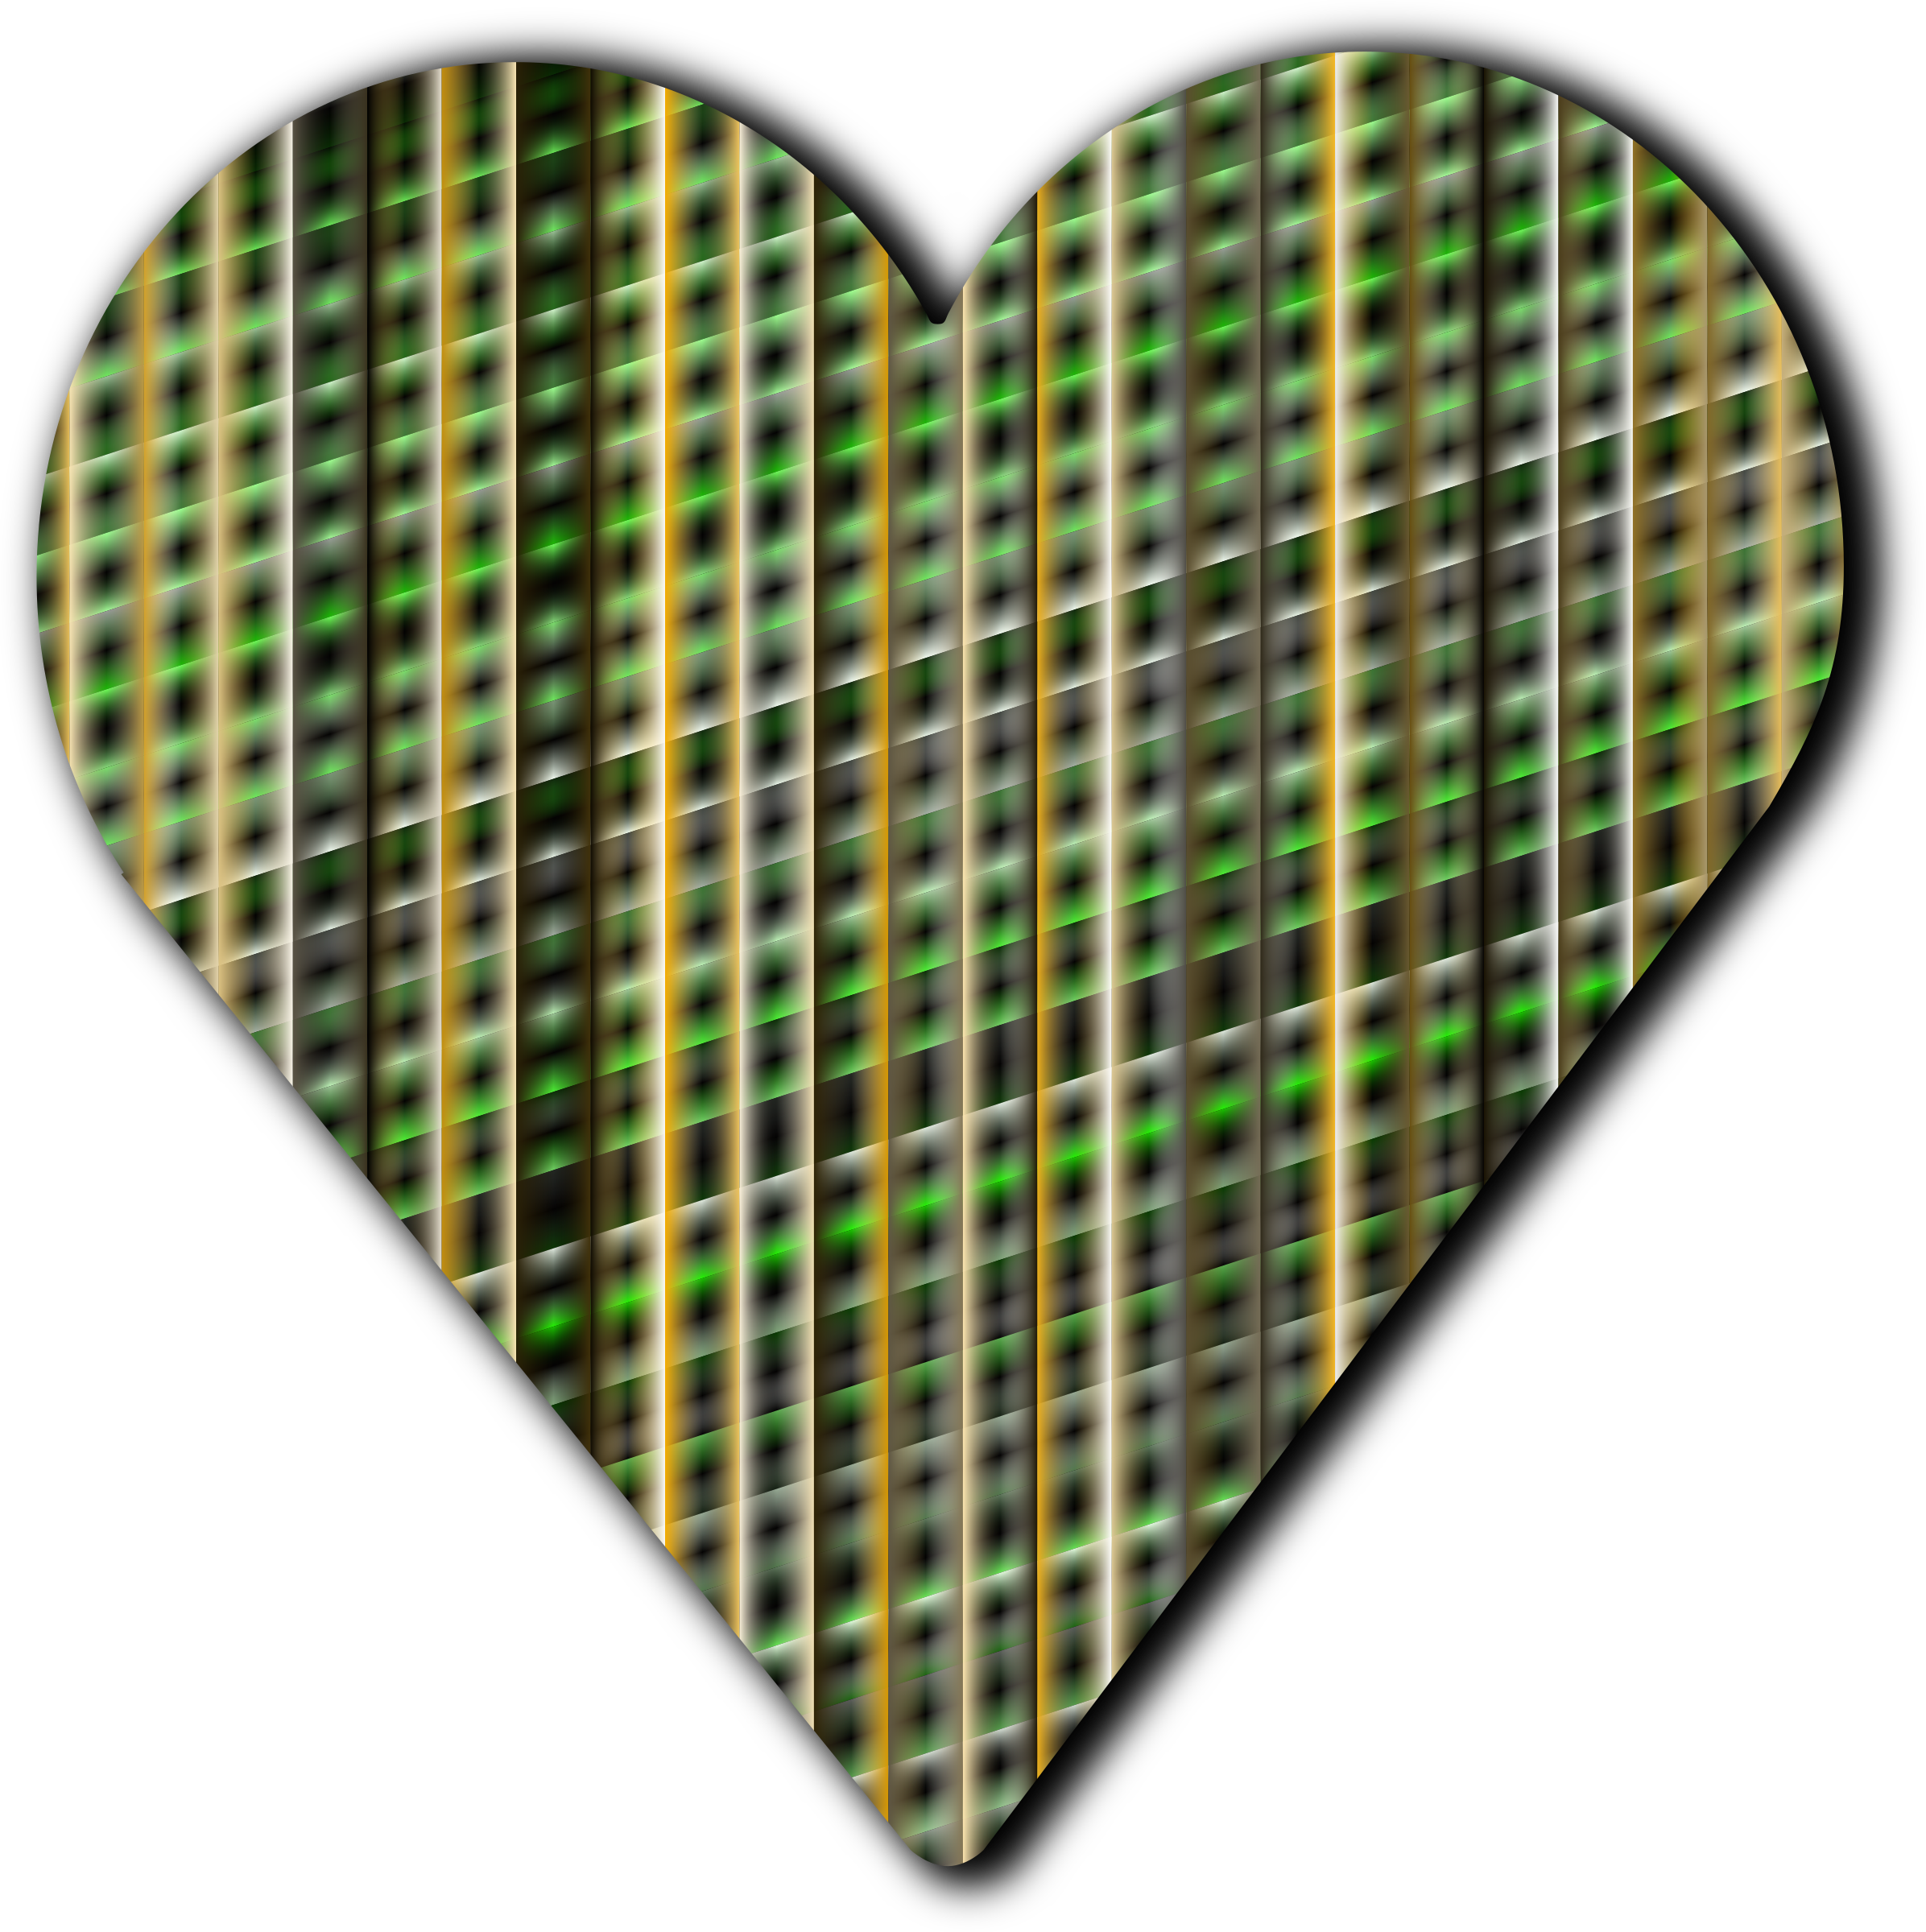 Patterned heart 5 by Firkin